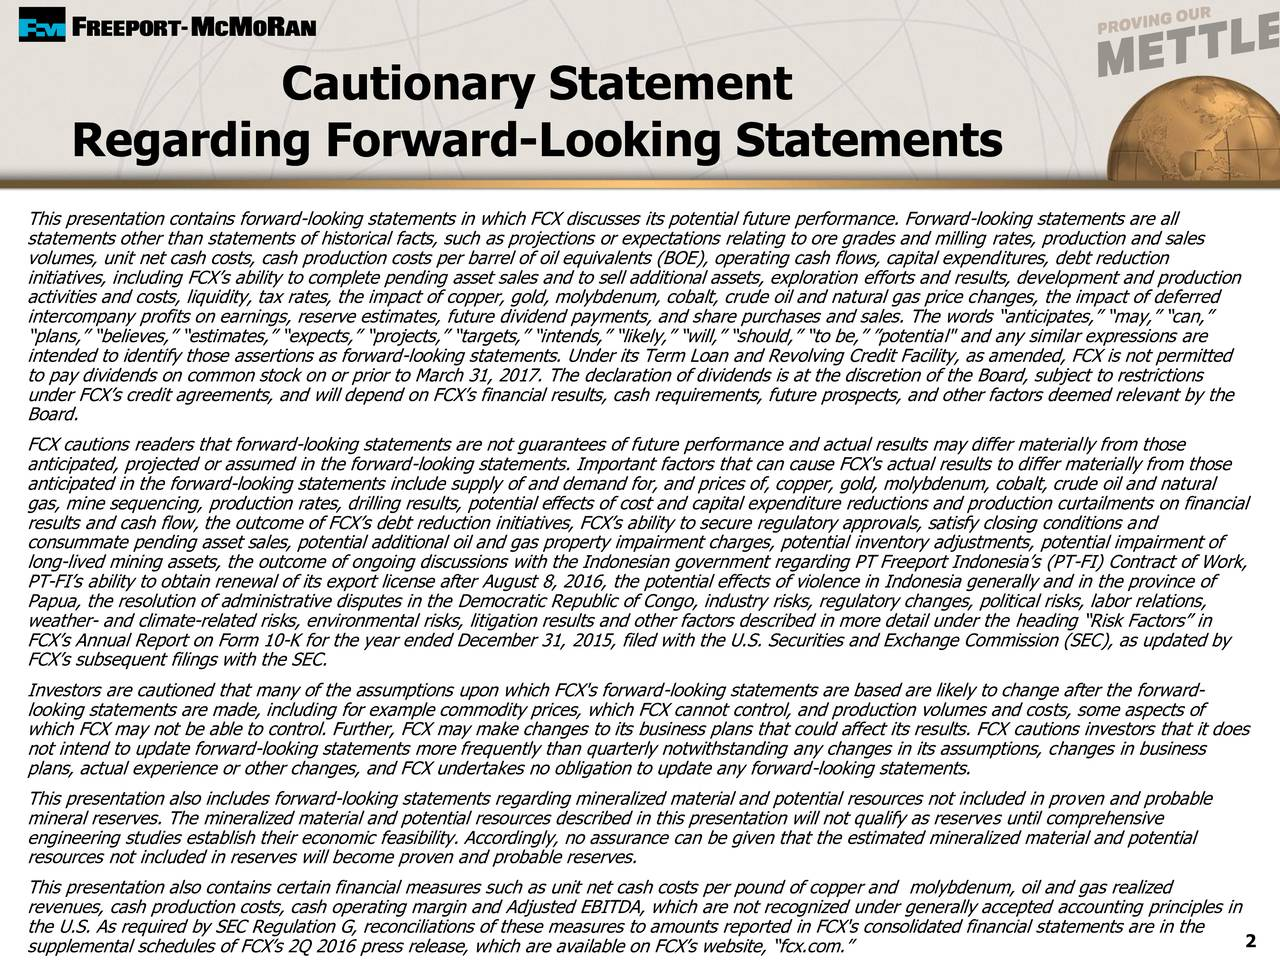 "Regarding Forward-Looking Statements This presentation contains forward-looking statements in which FCX discusses its potential future performance. Forward-looking statements are all statements other than statements of historical facts, such as projections or expectations relating to ore grades and milling rates, production and sales volumes, unit net cash costs, cash production costs per barrel of oil equivalents (BOE), operating cash flows, capital expenditures, debt reduction initiatives, including FCXs ability to complete pending asset sales and to sell additional assets, exploration efforts and results, development and production activities and costs, liquidity, tax rates, the impact of copper, gold, molybdenum, cobalt, crude oil and natural gas price changes, the impact of deferred intercompany profits on earnings, reserve estimates, future dividend payments, and share purchases and sales. The words anticipates, may, can, plans, believes, estimates, expects, projects, targets, intends, likely, will, should, to be, potential"" and any similar expressions are intended to identify those assertions as forward-looking statements. Under its Term Loan and Revolving Credit Facility, as amended, FCX is not permitted to pay dividends on common stock on or prior to March 31, 2017. The declaration of dividends is at the discretion of the Board, subject to restrictions under FCXs credit agreements, and will depend on FCXs financial results, cash requirements, future prospects, and other factors deemed relevant by the Board. FCX cautions readers that forward-looking statements are not guarantees of future performance and actual results may differ materially from those anticipated, projected or assumed in the forward-looking statements. Important factors that can cause FCX's actual results to differ materially from those anticipated in the forward-looking statements include supply of and demand for, and prices of, copper, gold, molybdenum, cobalt, crude oil and natural gas, mine sequencing, production rates, drilling results, potential effects of cost and capital expenditure reductions and production curtailments on financial results and cash flow, the outcome of FCXs debt reduction initiatives, FCXs ability to secure regulatory approvals, satisfy closing conditions and consummate pending asset sales, potential additional oil and gas property impairment charges, potential inventory adjustments, potential impairment of long-lived mining assets, the outcome of ongoing discussions with the Indonesian government regarding PT Freeport Indonesias (PT-FI) Contract of Work, PT-FIs ability to obtain renewal of its export license after August 8, 2016, the potential effects of violence in Indonesia generally and in the province of Papua, the resolution of administrative disputes in the Democratic Republic of Congo, industry risks, regulatory changes, political risks, labor relations, weather- and climate-related risks, environmental risks, litigation results and other factors described in more detail under the heading Risk Factors in FCXs Annual Report on Form 10-K for the year ended December 31, 2015, filed with the U.S. Securities and Exchange Commission (SEC), as updated by FCXs subsequent filings with the SEC. Investors are cautioned that many of the assumptions upon which FCX's forward-looking statements are based are likely to change after the forward- looking statements are made, including for example commodity prices, which FCX cannot control, and production volumes and costs, some aspects of which FCX may not be able to control. Further, FCX may make changes to its business plans that could affect its results. FCX cautions investors that it does not intend to update forward-looking statements more frequently than quarterly notwithstanding any changes in its assumptions, changes in business plans, actual experience or other changes, and FCX undertakes no obligation to update any forward-looking statements. This presentation also includes forward-looking statements regarding mineralized material and potential resources not included in proven and probable mineral reserves. The mineralized material and potential resources described in this presentation will not qualify as reserves until comprehensive engineering studies establish their economic feasibility. Accordingly, no assurance can be given that the estimated mineralized material and potential resources not included in reserves will become proven and probable reserves. This presentation also contains certain financial measures such as unit net cash costs per pound of copper and molybdenum, oil and gas realized revenues, cash production costs, cash operating margin and Adjusted EBITDA, which are not recognized under generally accepted accounting principles in the U.S. As required by SEC Regulation G, reconciliations of these measures to amounts reported in FCX's consolidated financial statements are in the 2"